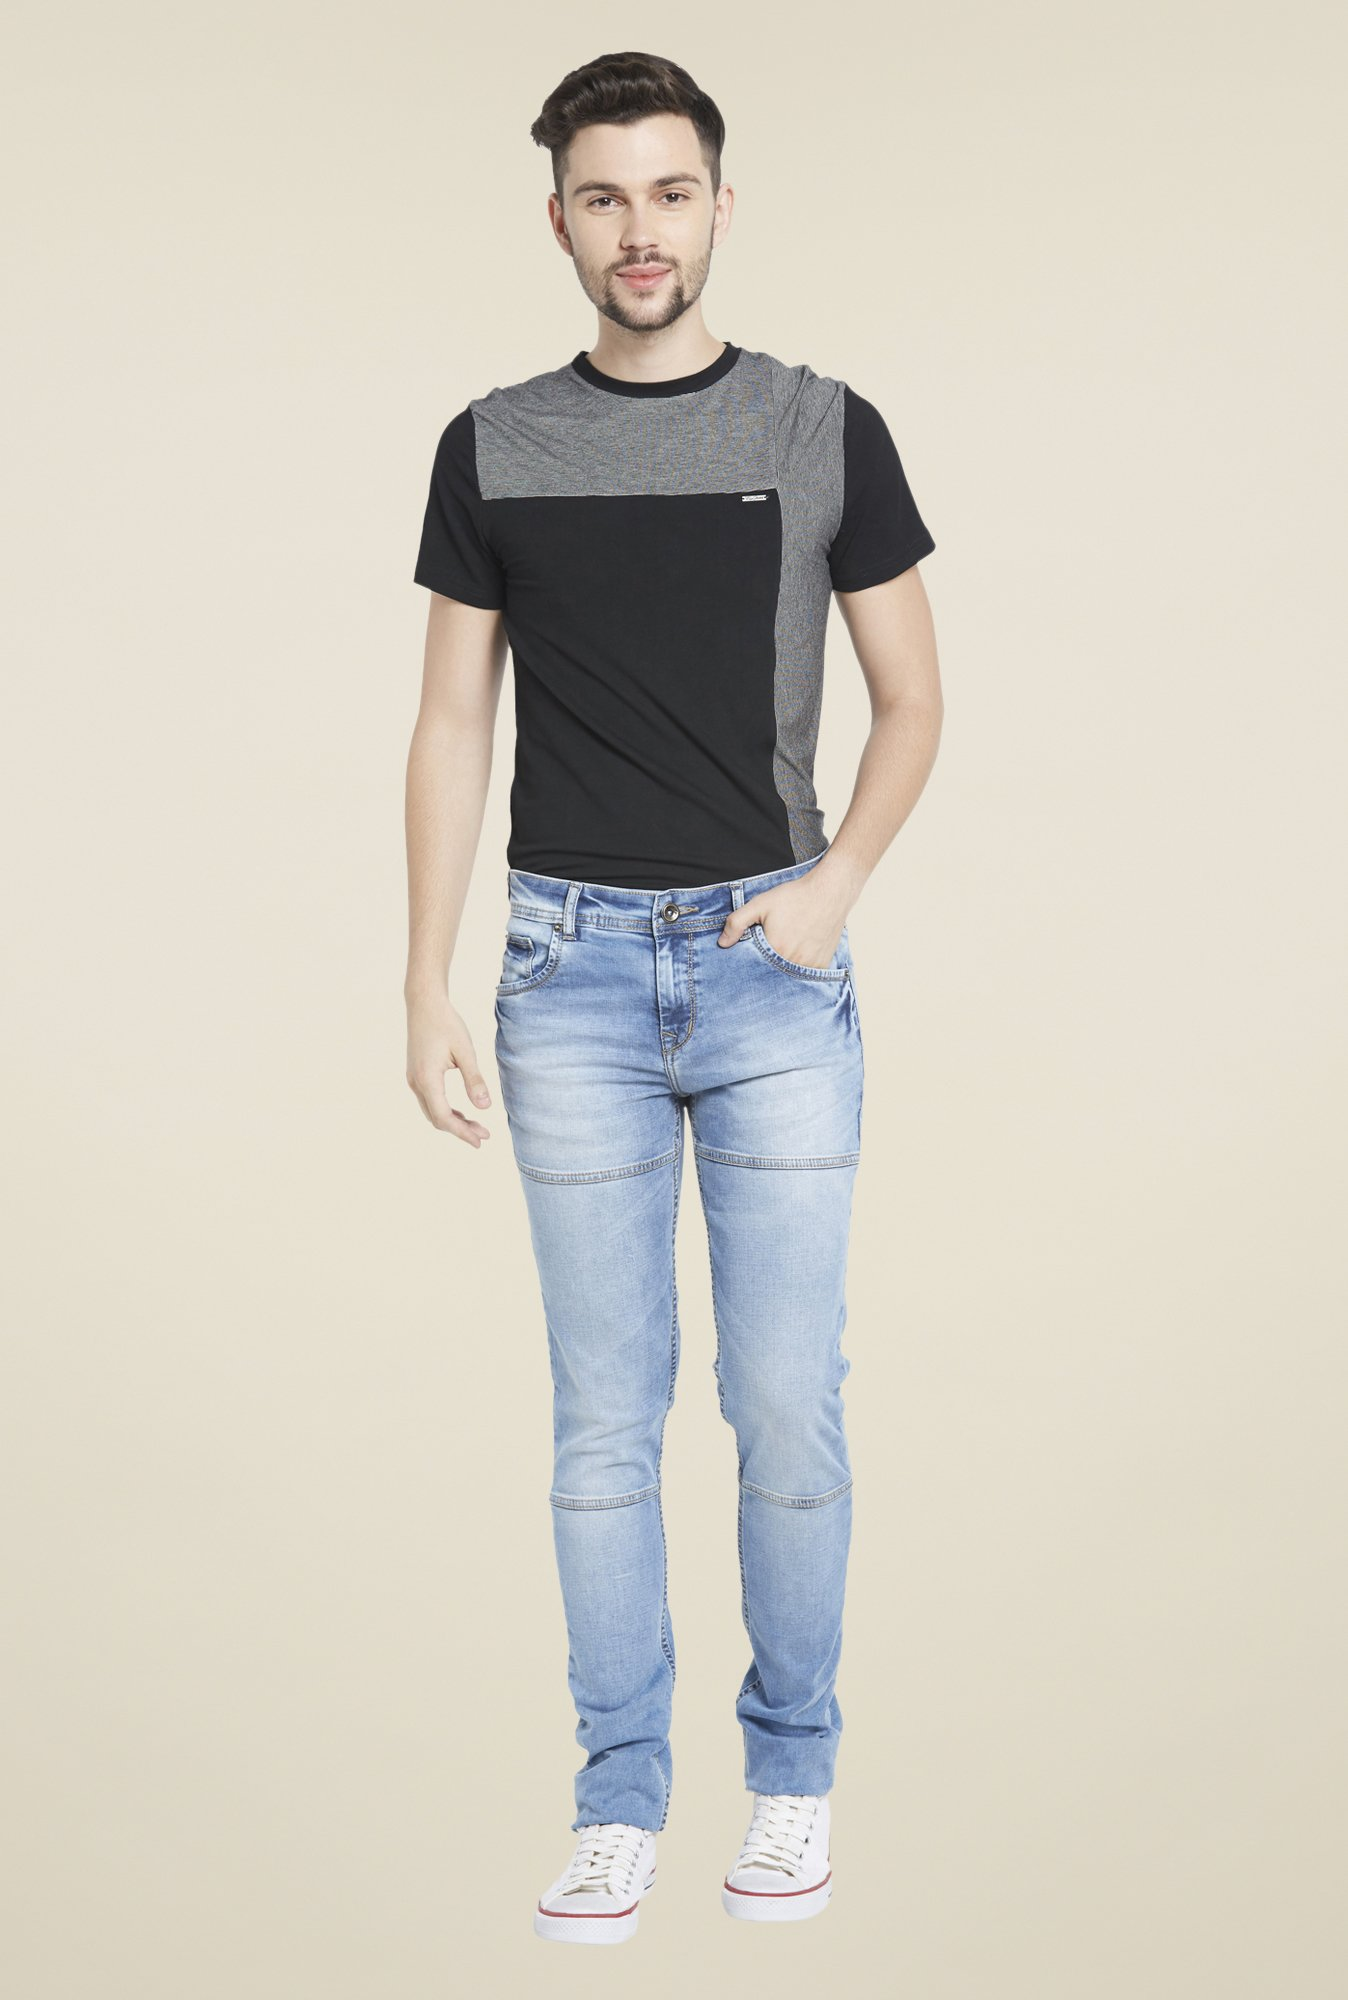 TataCliq: Globus Blue Heavily Washed Jeans – Size 36 @ Rs.199/- (90% OFF)